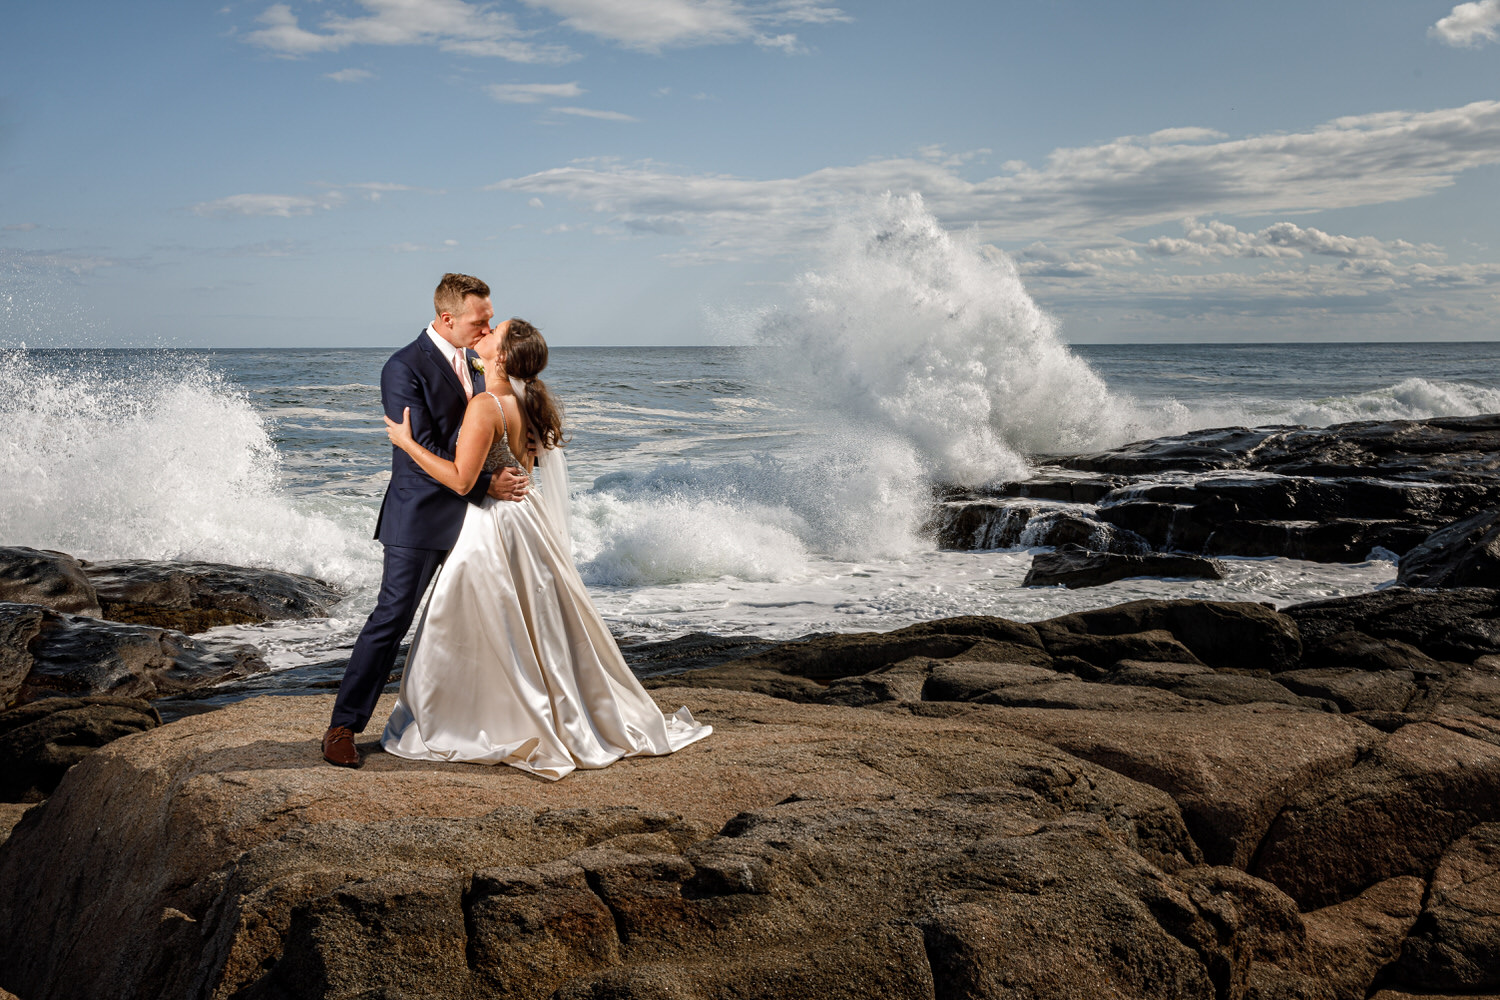 Bride and Groom on rock in front of Atlantic Ocean with big wave in the background